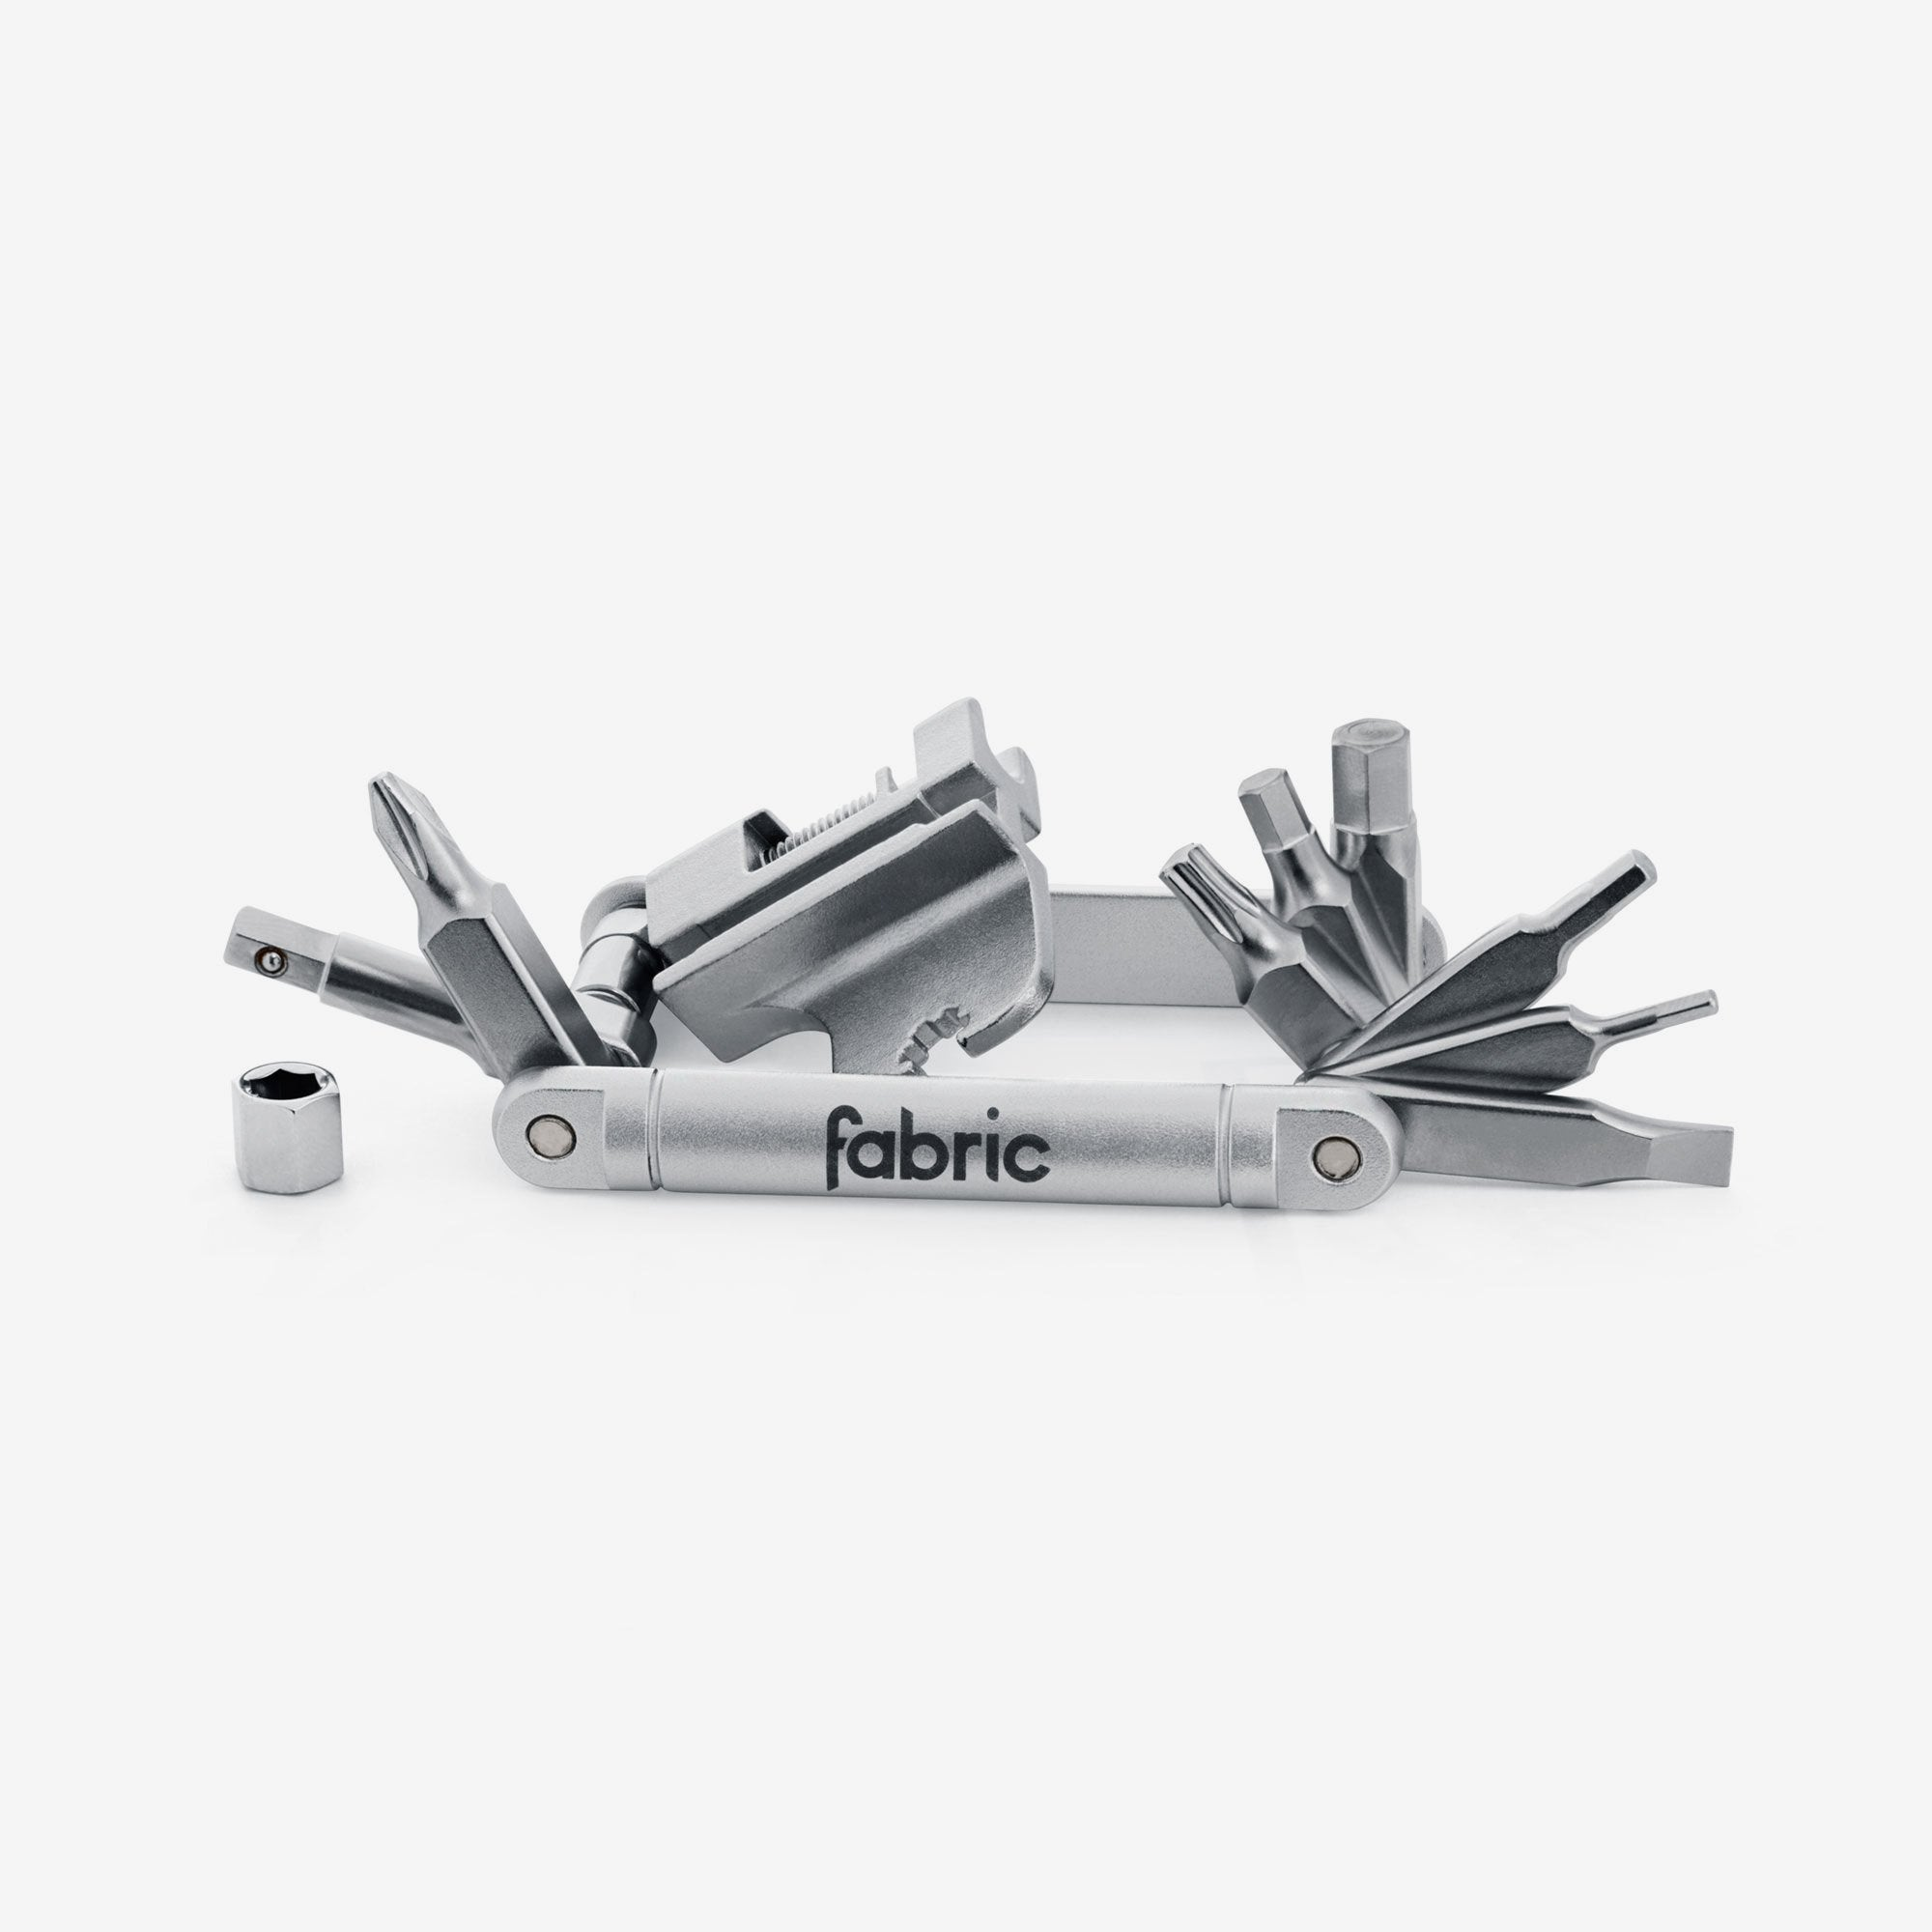 Fabric 16 in 1 Compact Multitool